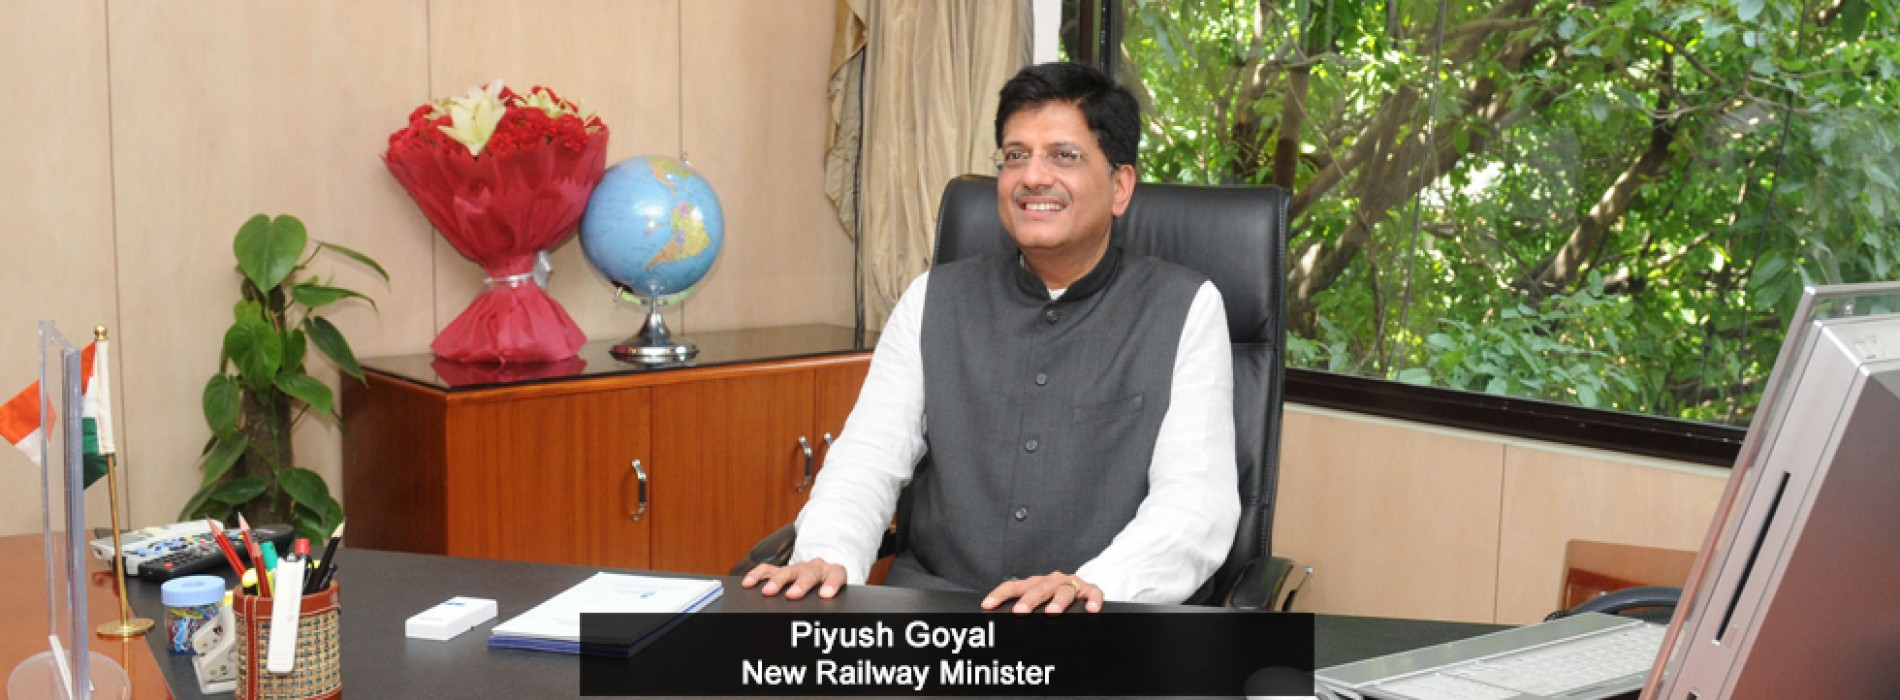 Piyush Goyal is new railway minister